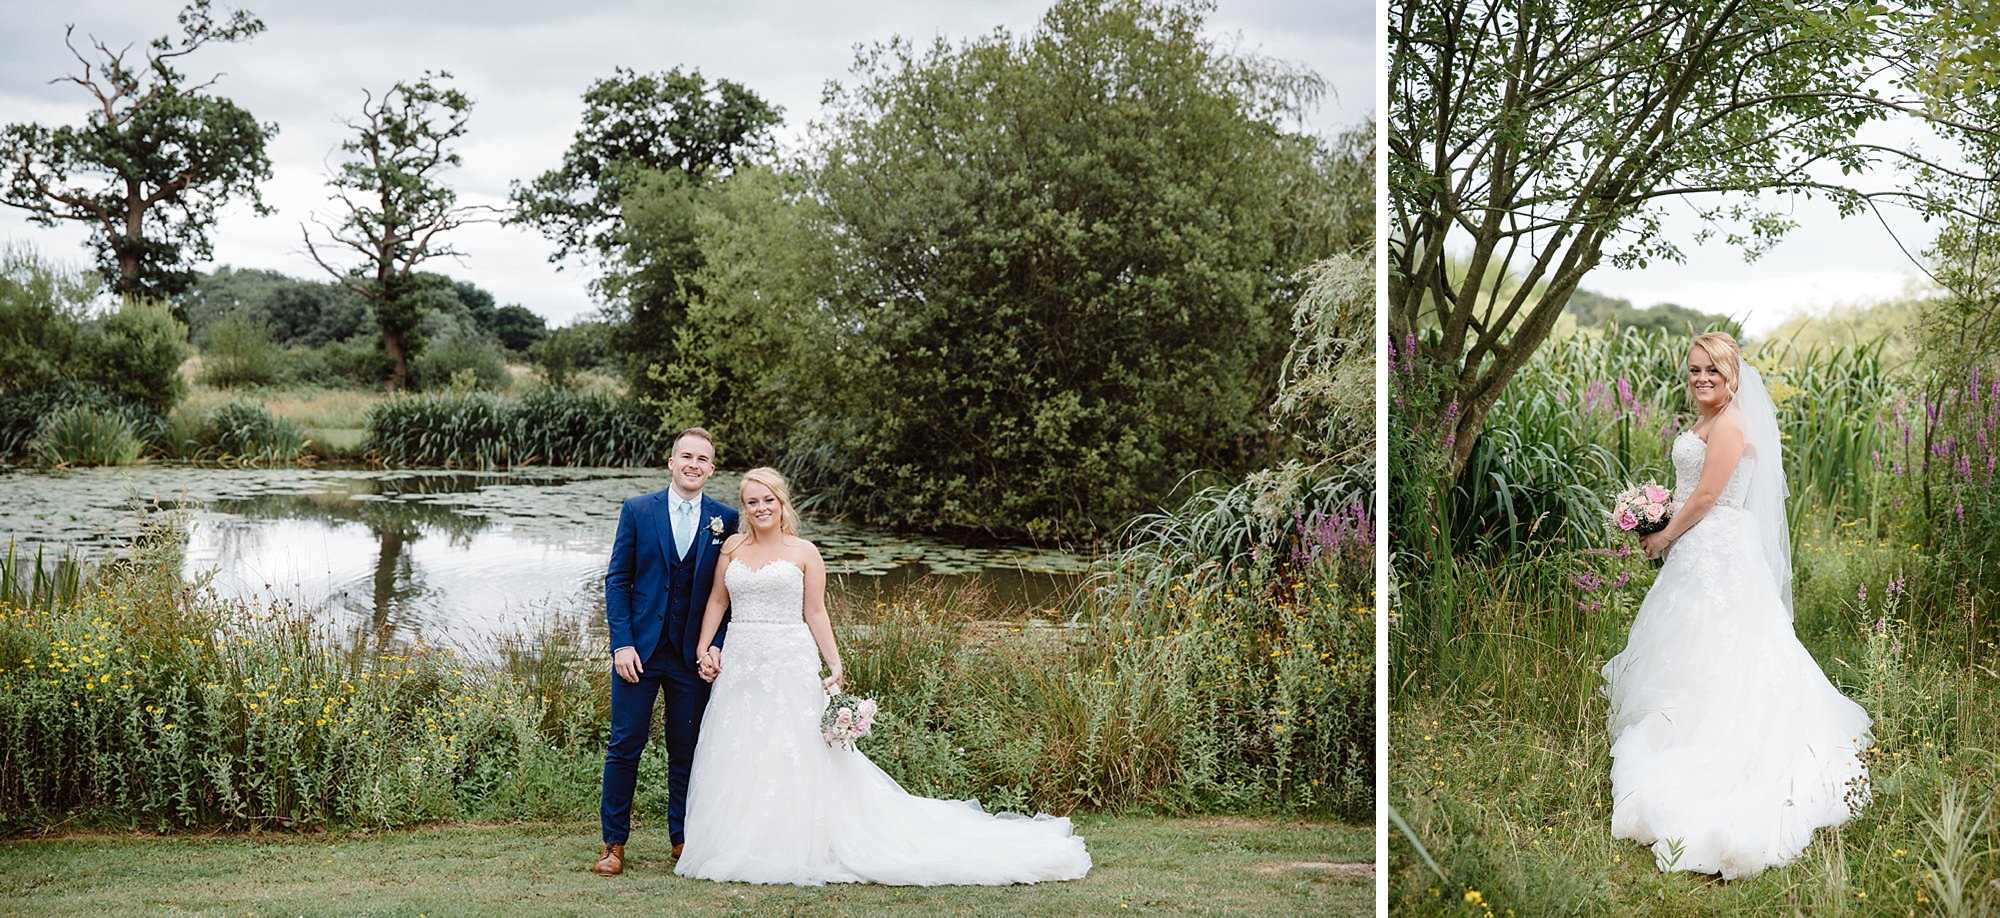 Old Greens Barn Newdigate wedding photography couple at lake